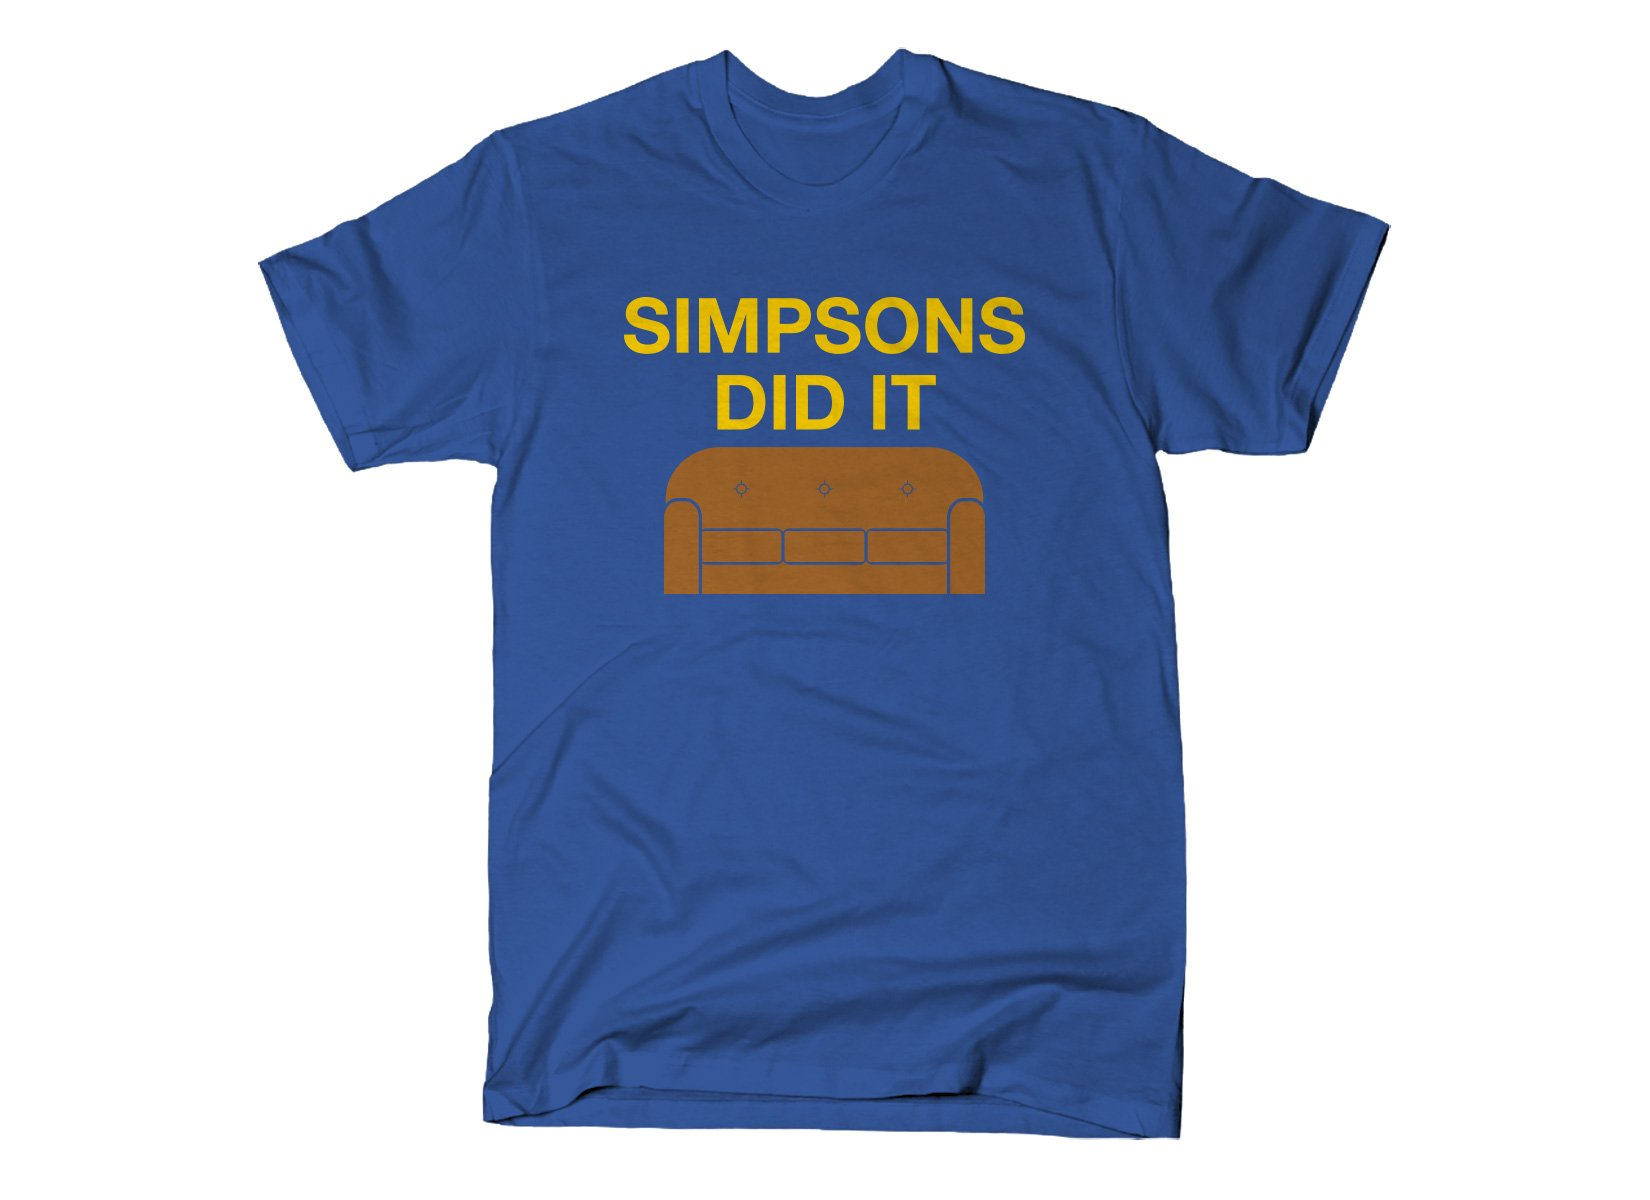 Simpsons Did It on Mens T-Shirt